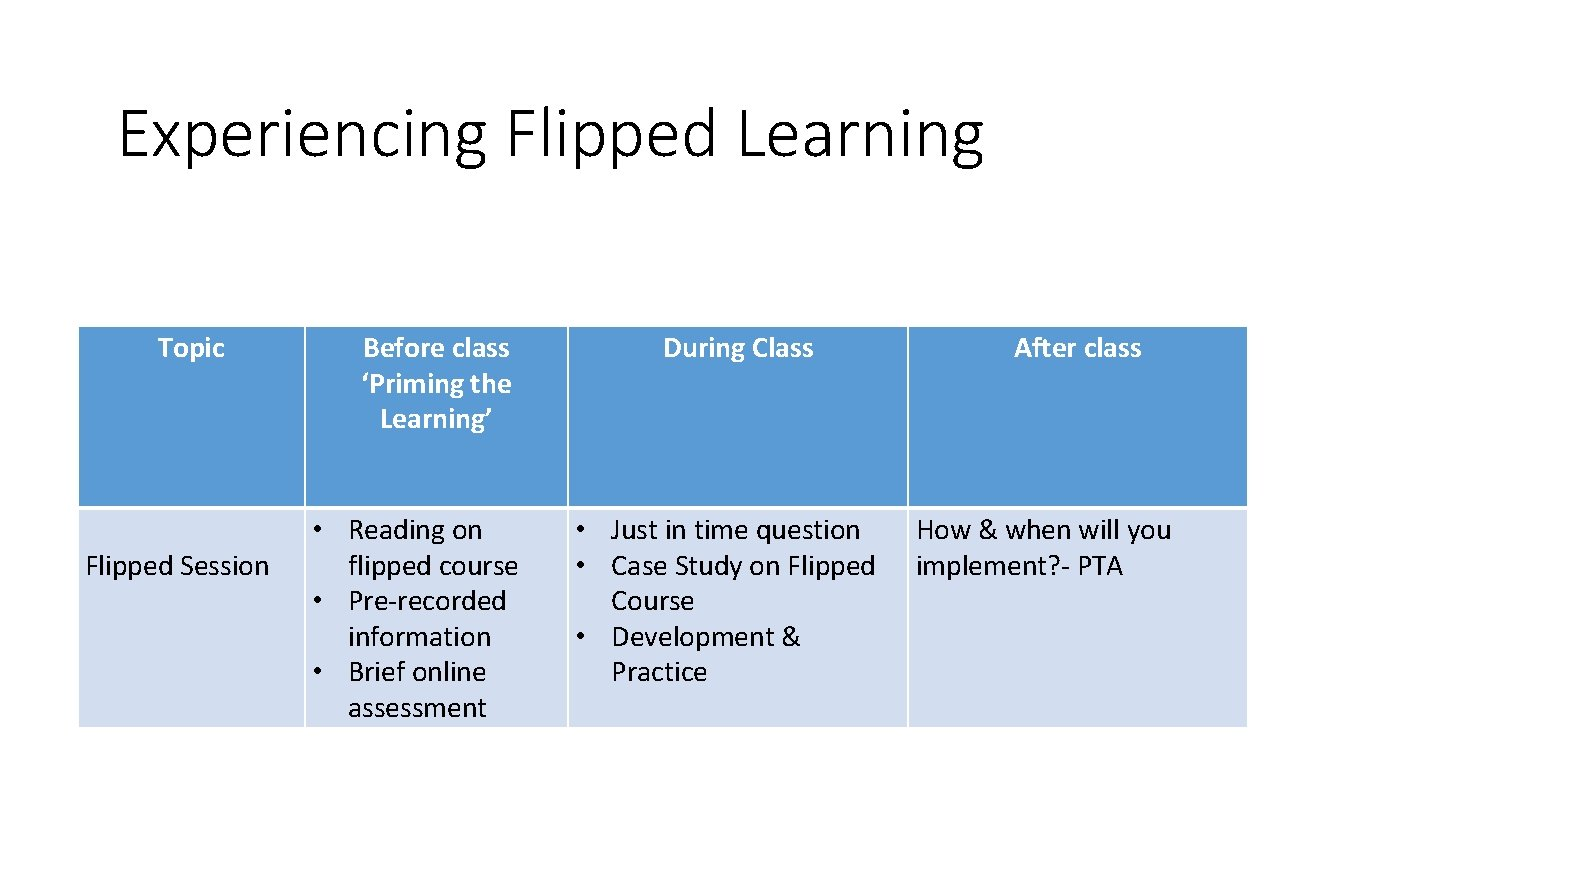 Experiencing Flipped Learning Topic Flipped Session Before class 'Priming the Learning' • Reading on